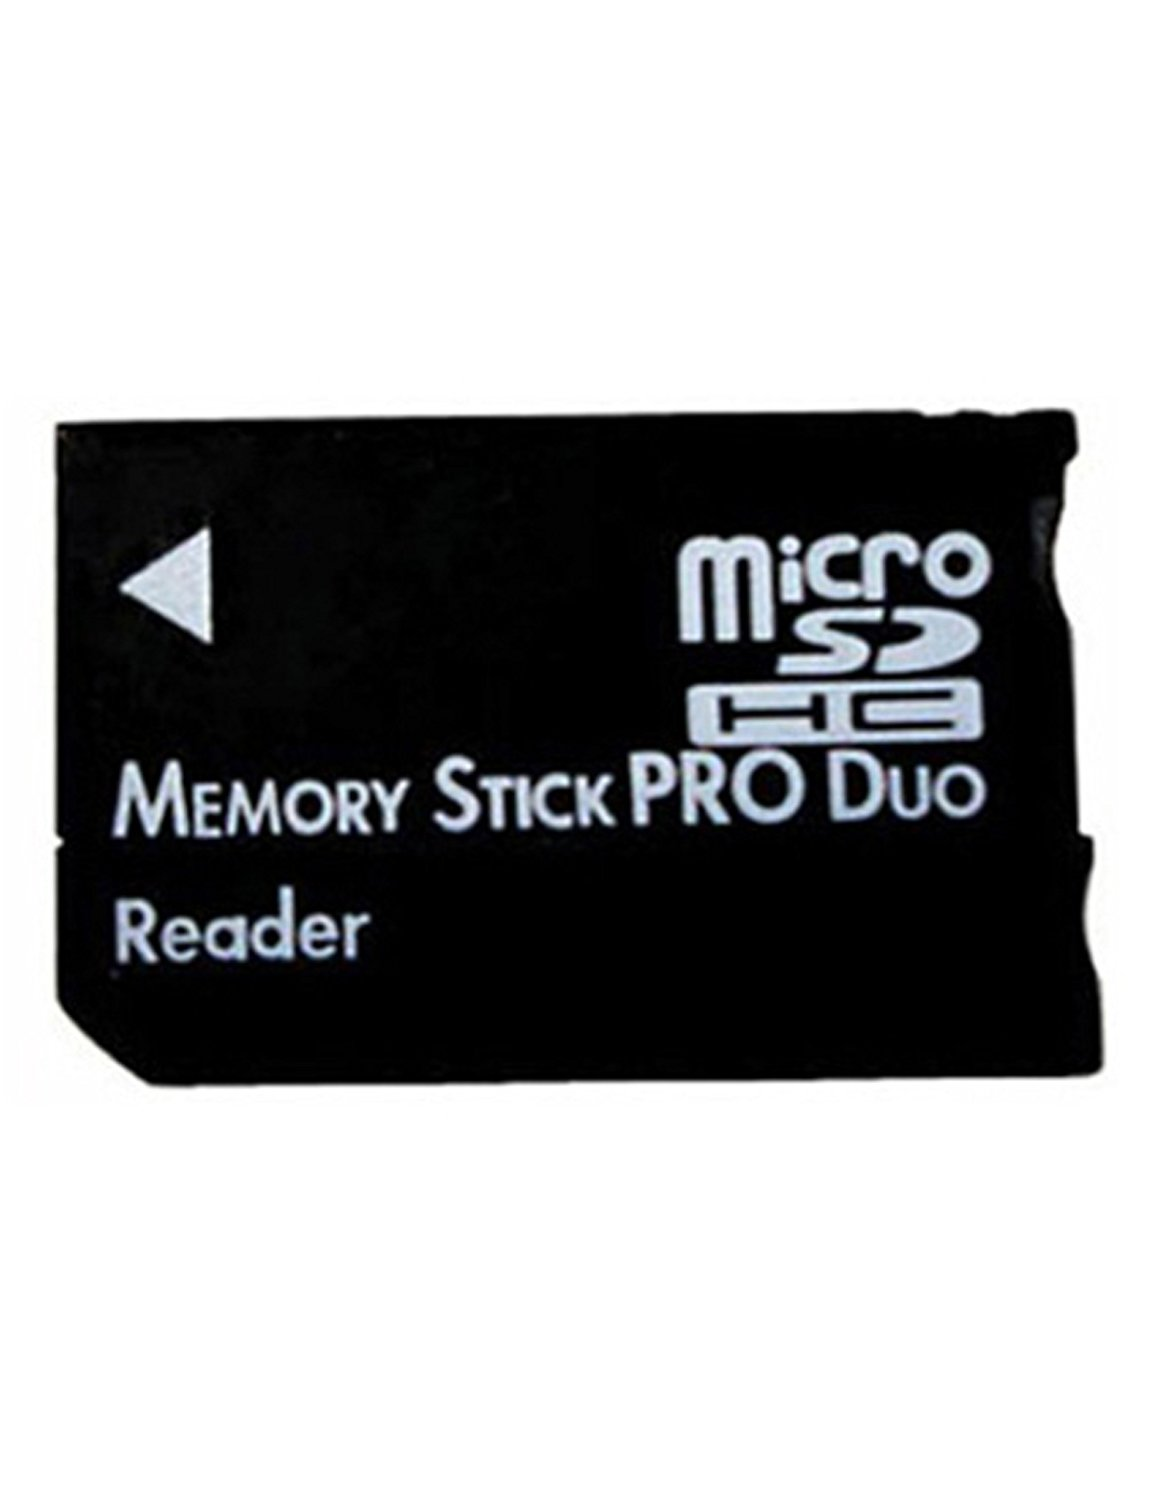 Bandc 100pcs Micro Sd Sdhc Tf to Ms Memory Stick Pro Duo Card Reader Adapter for PSP